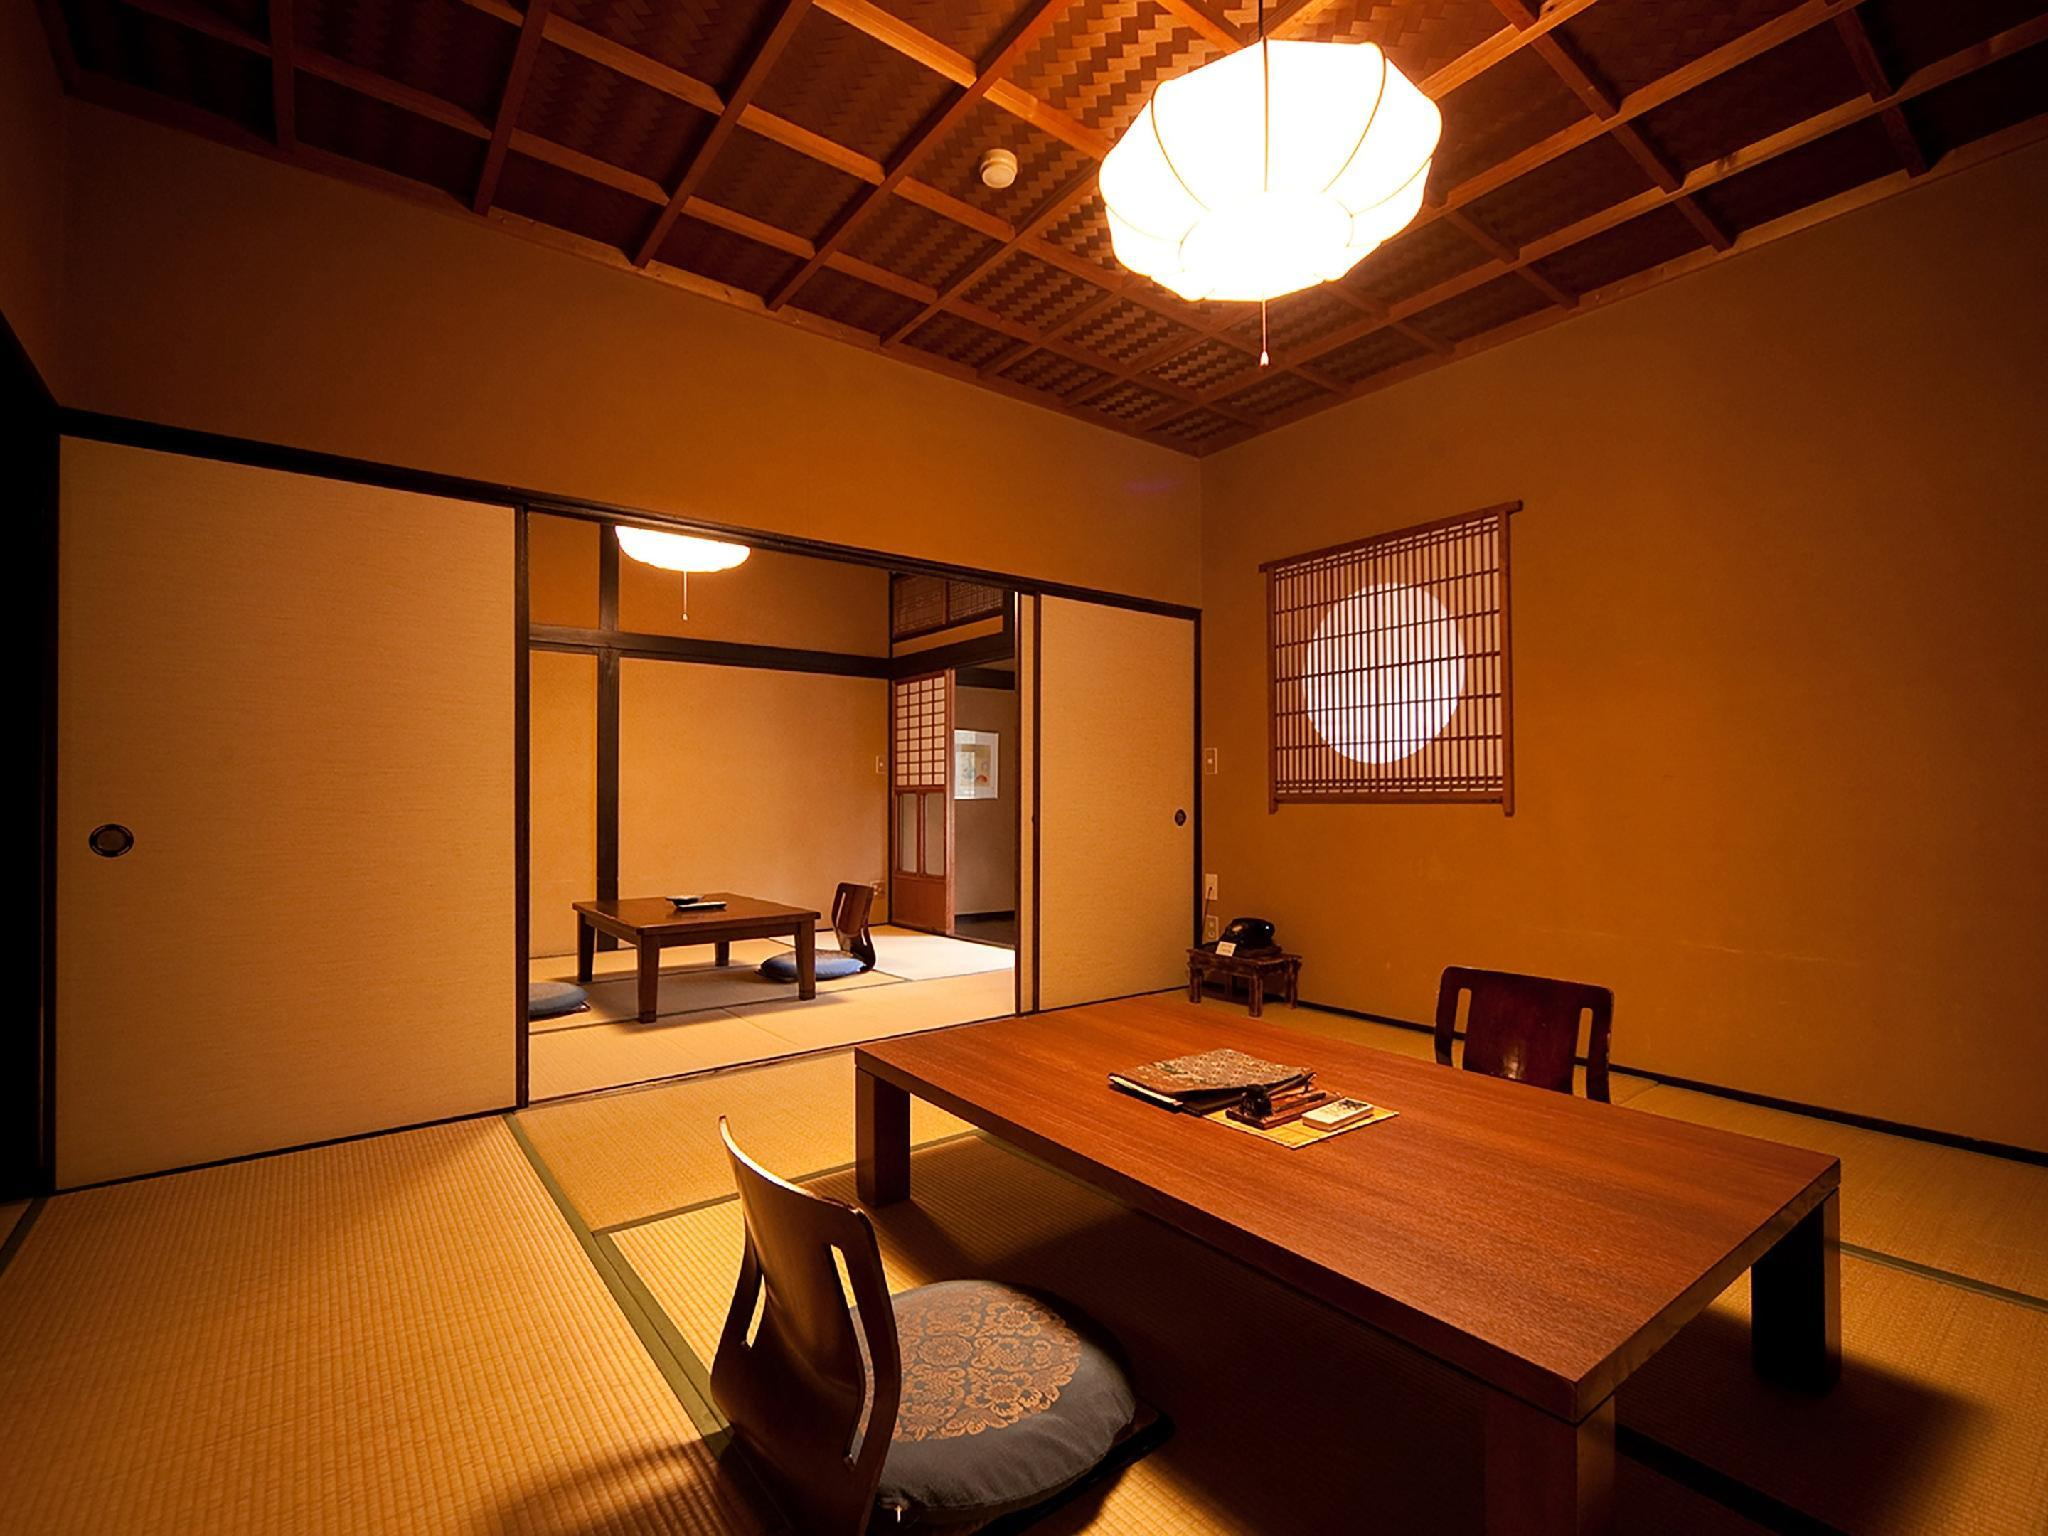 高砂 獨立房(和式8帖+6帖榻榻米+檜木室內風呂) (Detached Japanese-style Room with Cypress Indoor Bath (8 tatami + 6 tatami, Takasago Type))